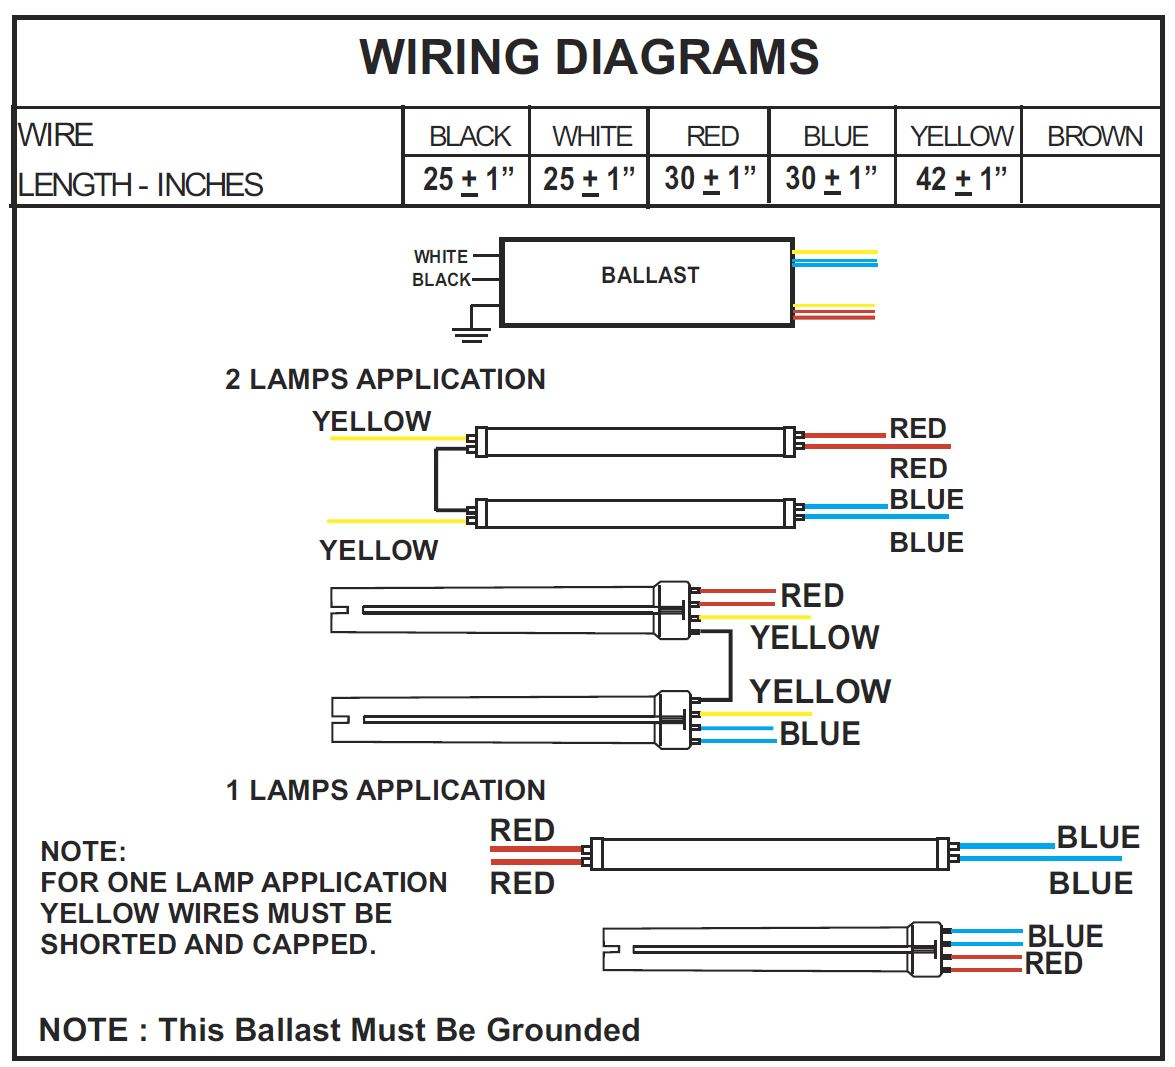 2 lamp t5 multi-purpose electronic ballast | usalight.com t5 fulham ballast wiring diagram t5 ballast wiring diagram 120 277 #11